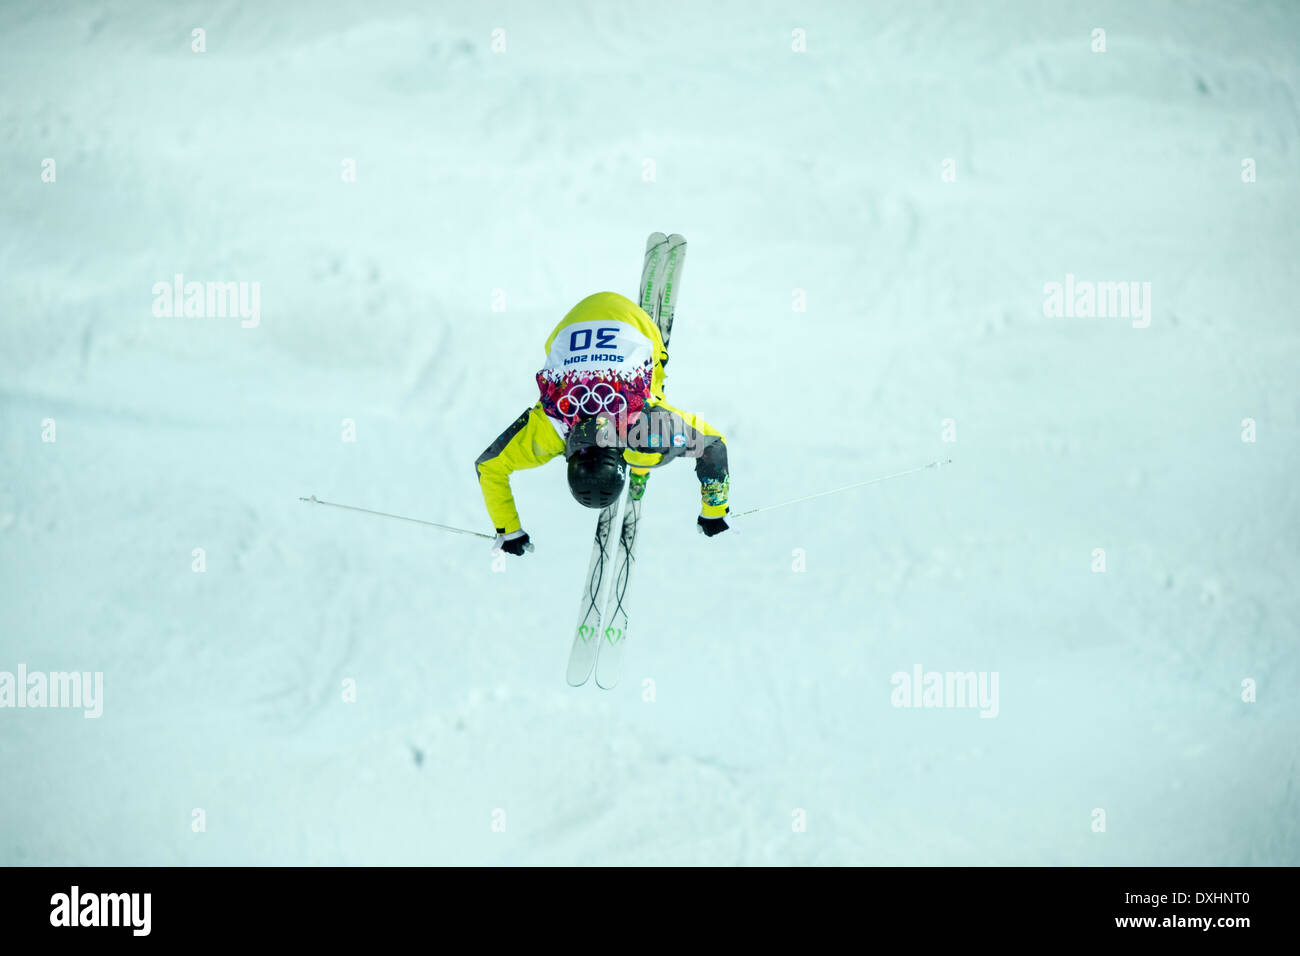 Pavel Kolmakov (KAZ) freestyle skier competing in Men's Moguls at the Olympic Winter Games, Sochi 2014 - Stock Image